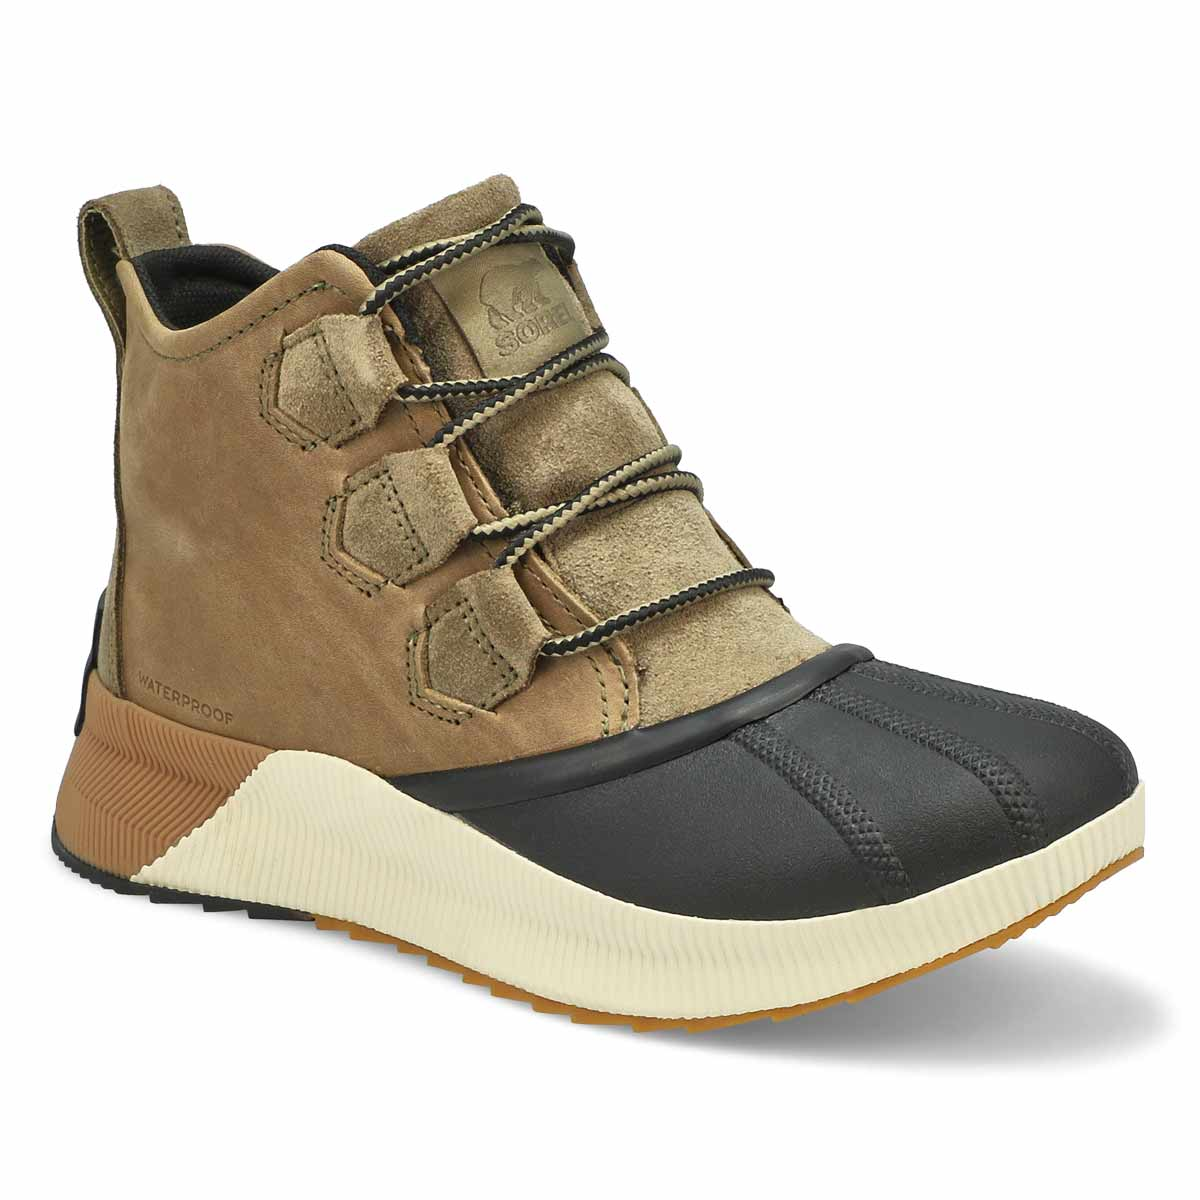 Botte imperméable OUT 'N ABOUT III, femme